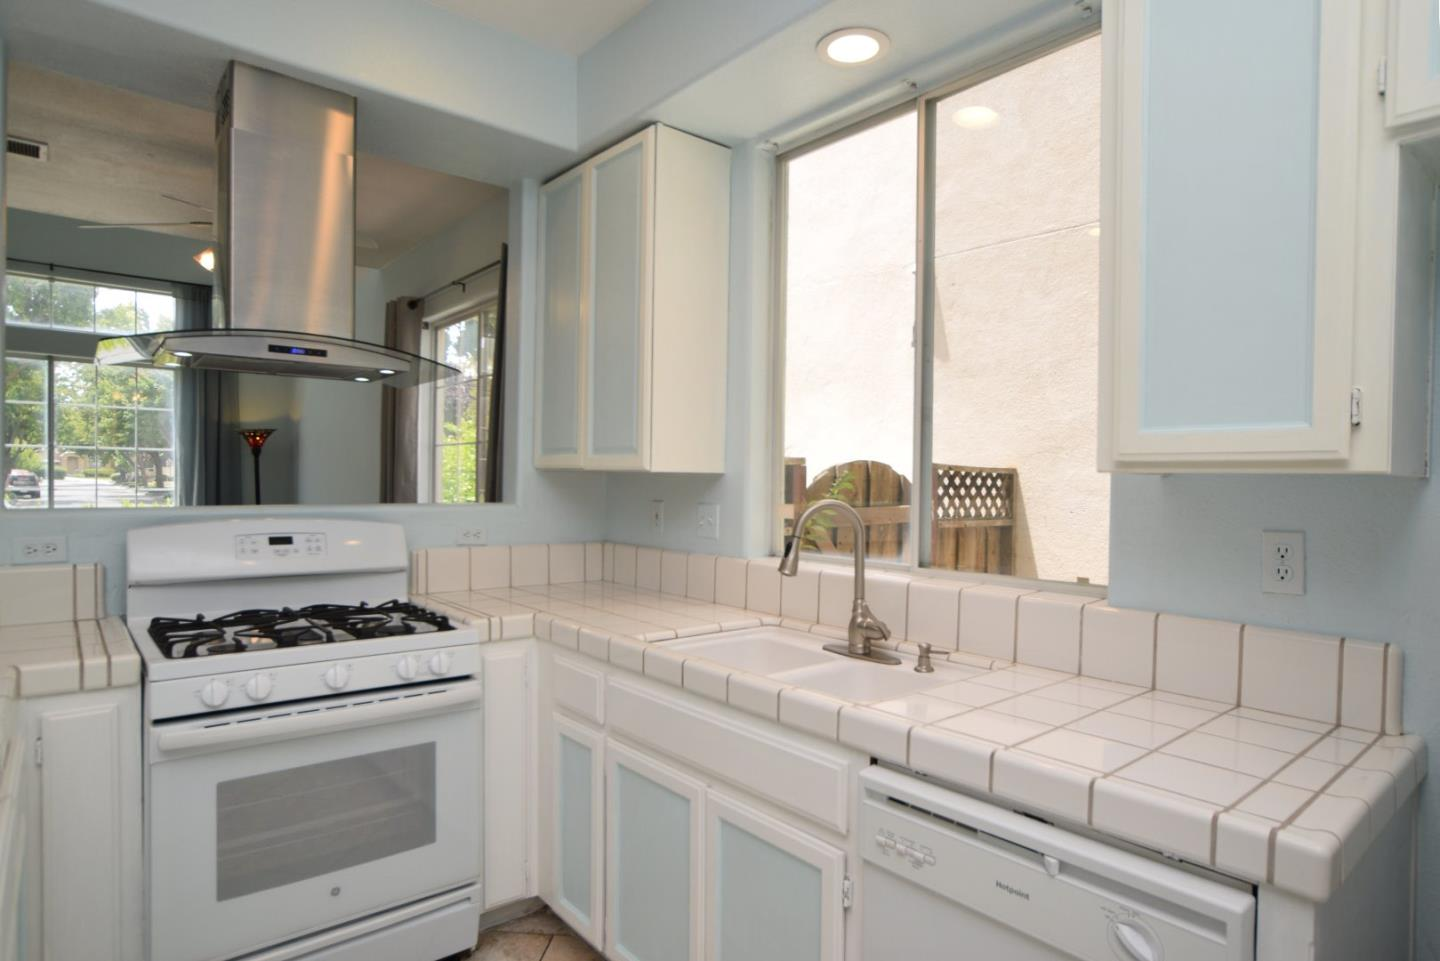 Additional photo for property listing at 267 Holland Circle  Hollister, Californie 95023 États-Unis